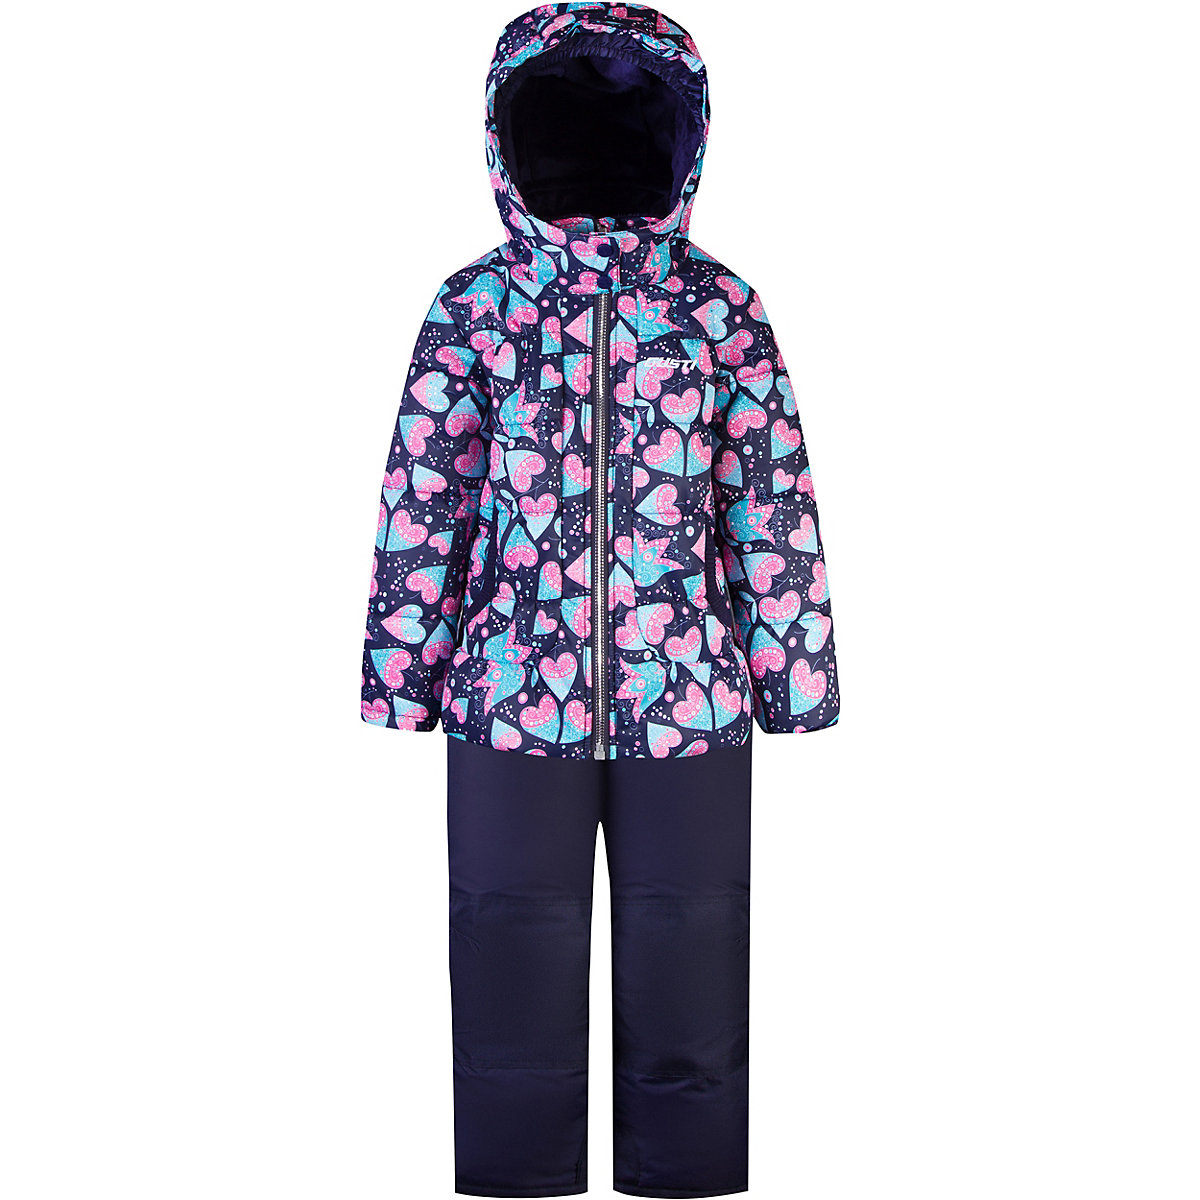 GUSTI Children's Sets 9512013 clothing for girls set dress winter clothes girl kids wear wholesale summer family look chidren clothing kids girl fashion dress mom daughter matching clothes mother and girls beach dress